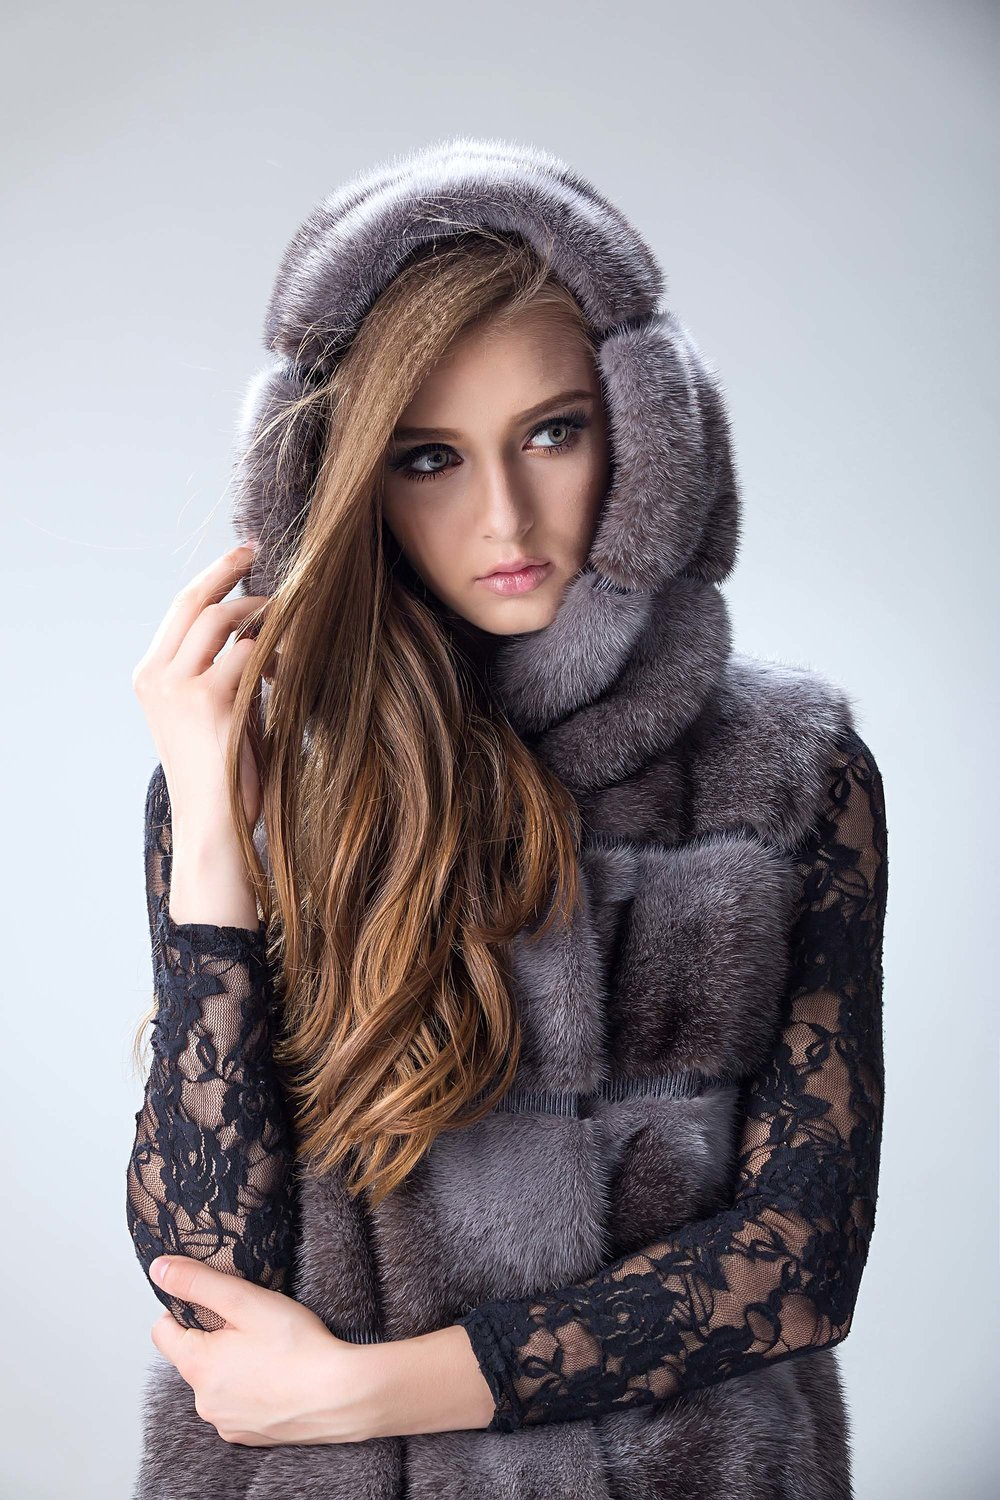 pat-flesher-furs-vest-head-grey.jpg